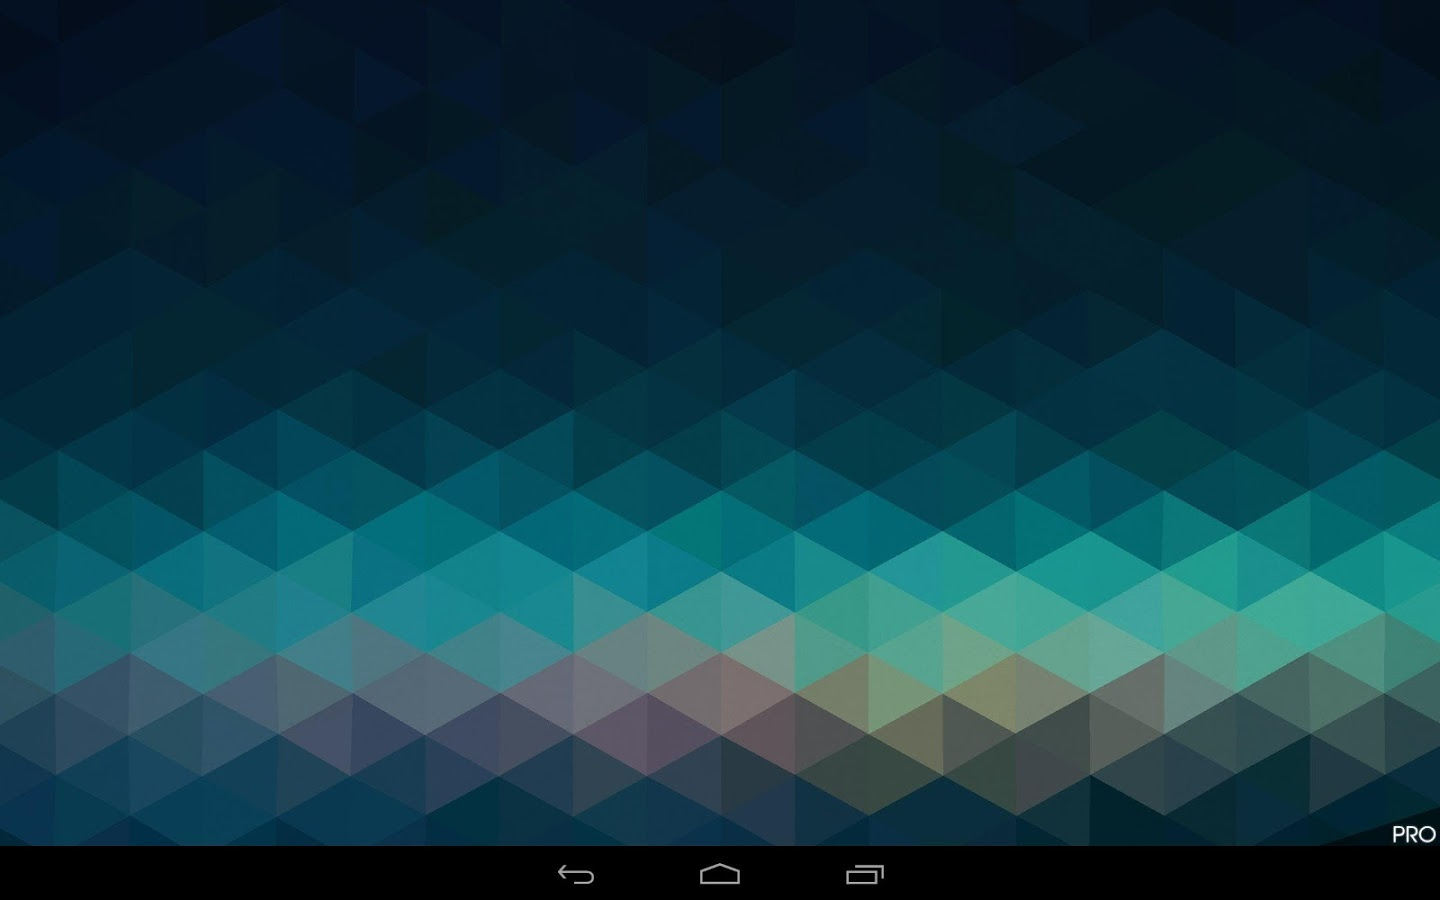 Fracta Pro Live Wallpaper   Android Apps on Google Play 1440x900